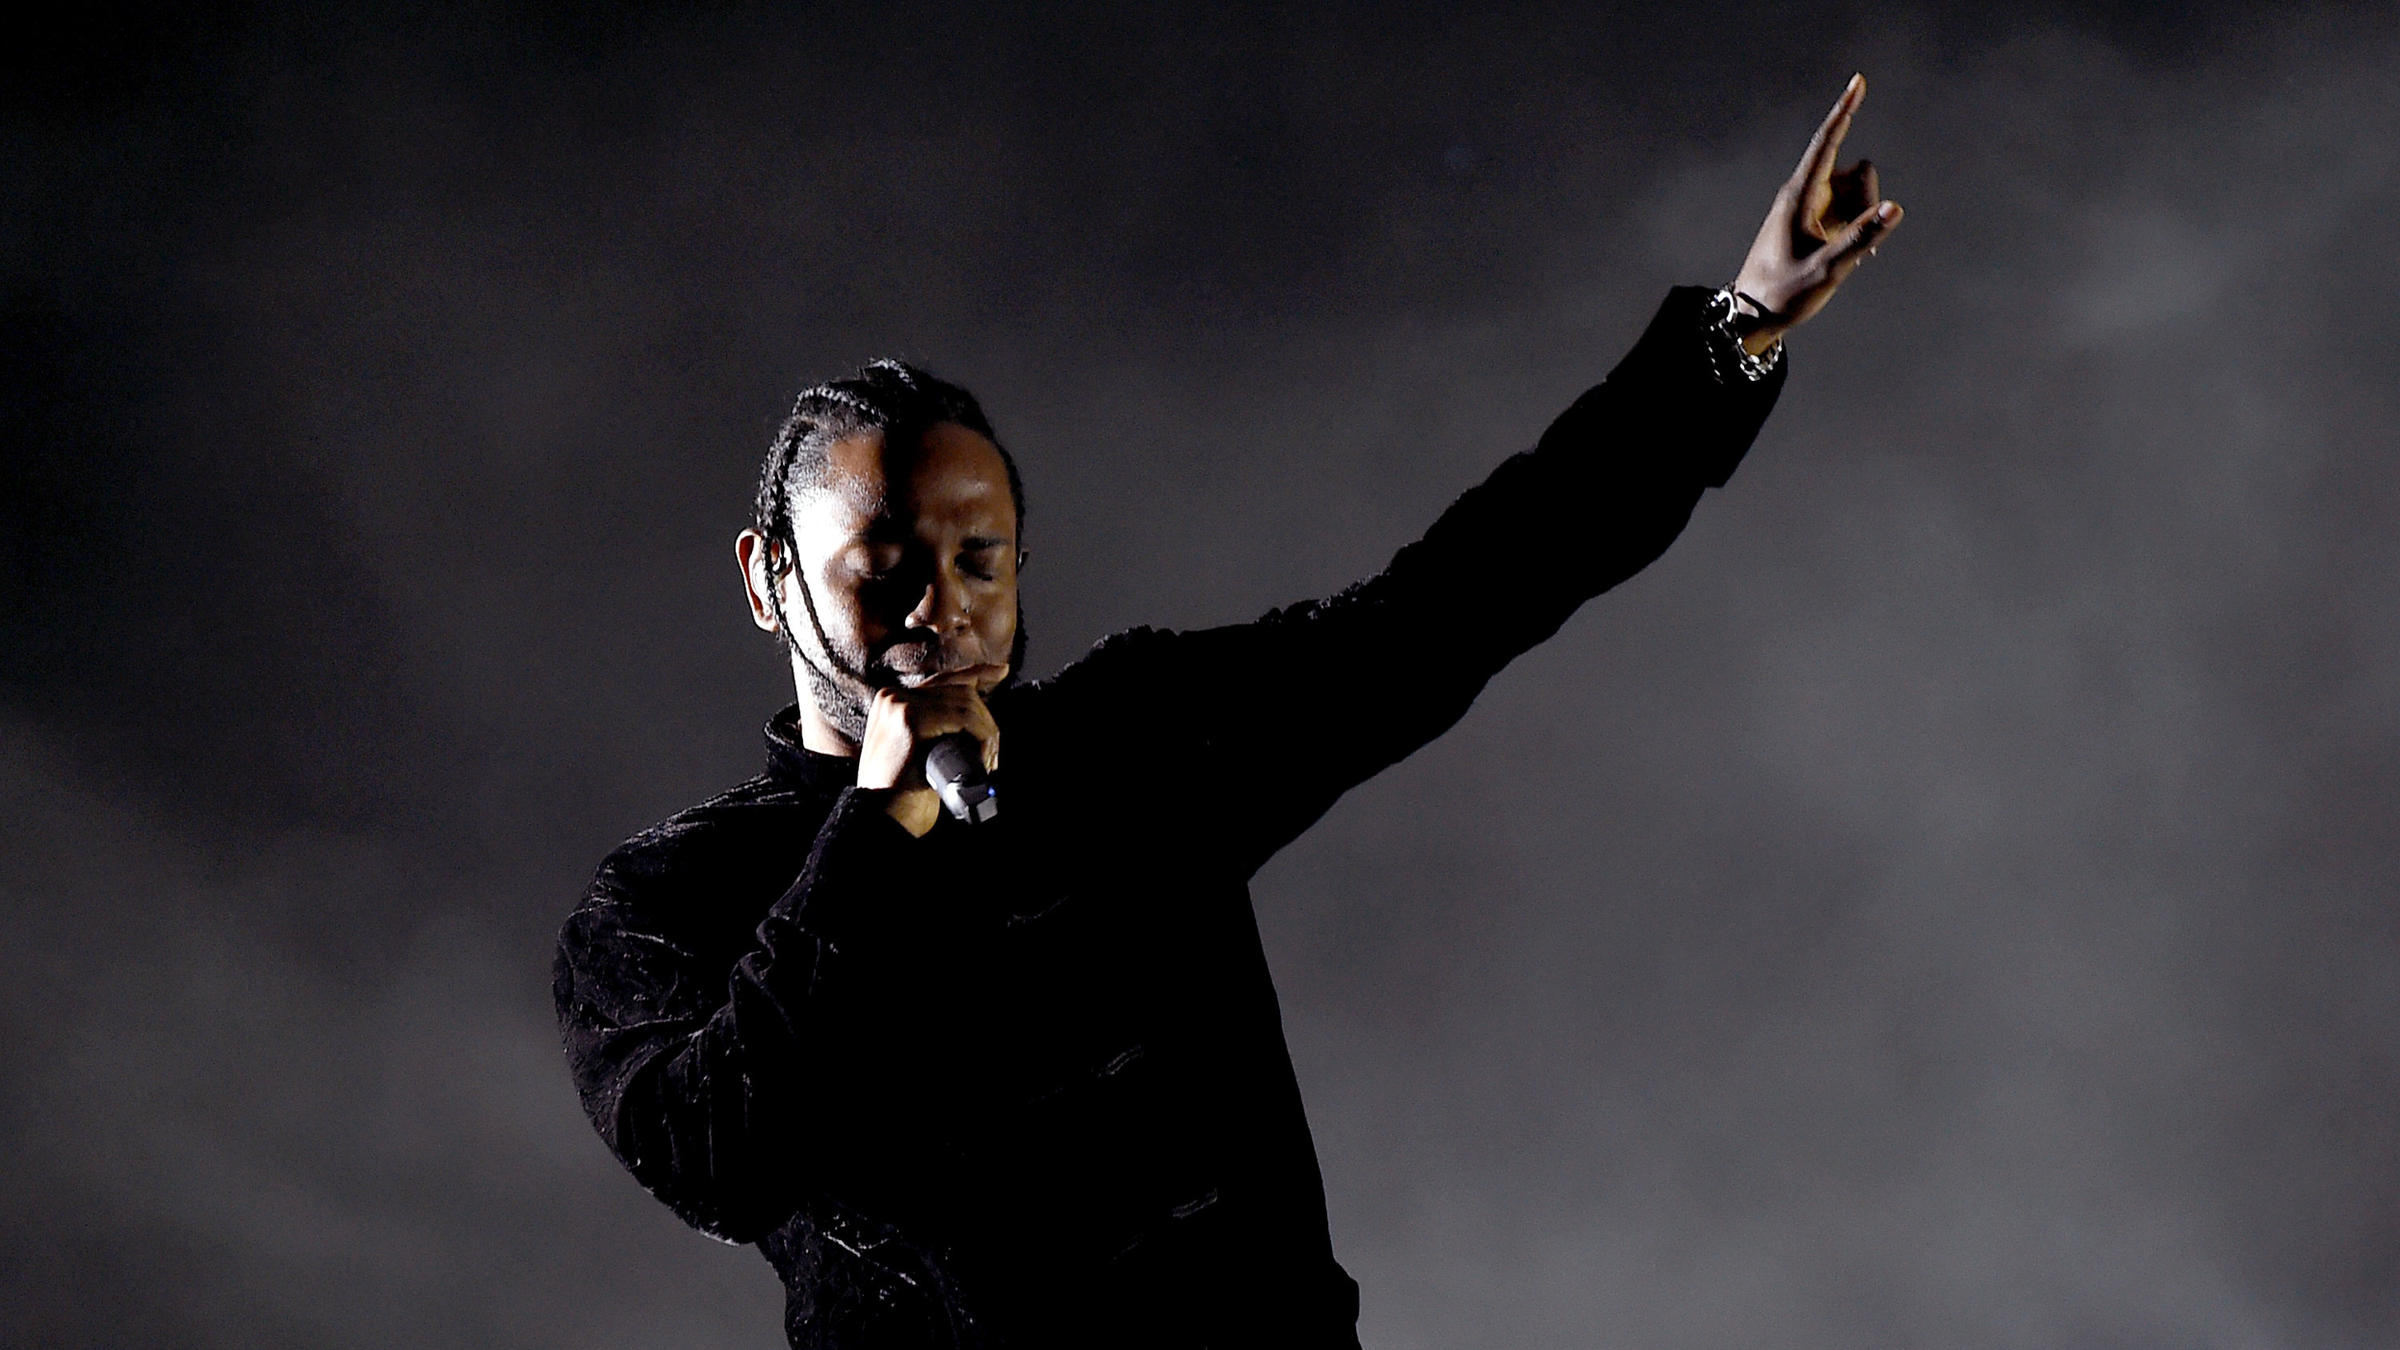 Kendrick Lamar And Don Cheadle Go Bar For Bar In 'DNA' Video